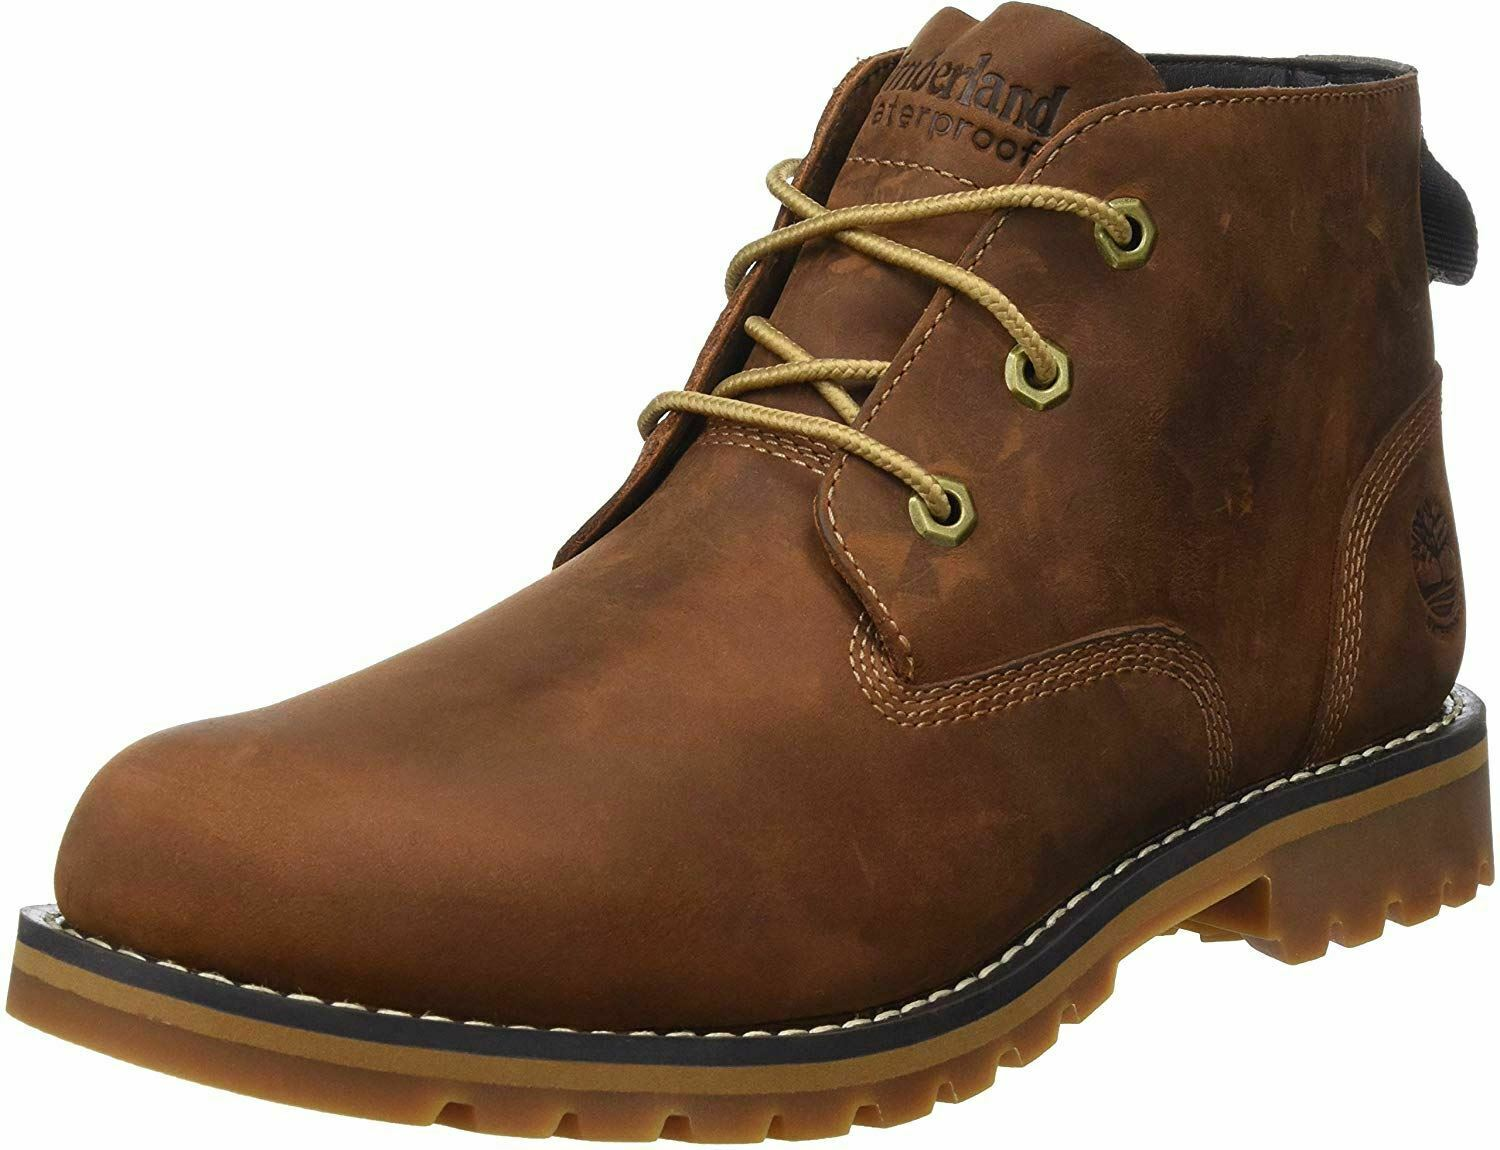 Jabeth Wilson bala Conquistar  Timberland Larchmont Chukka Brown Waterproof Mens Leather Boots for sale  online | eBay